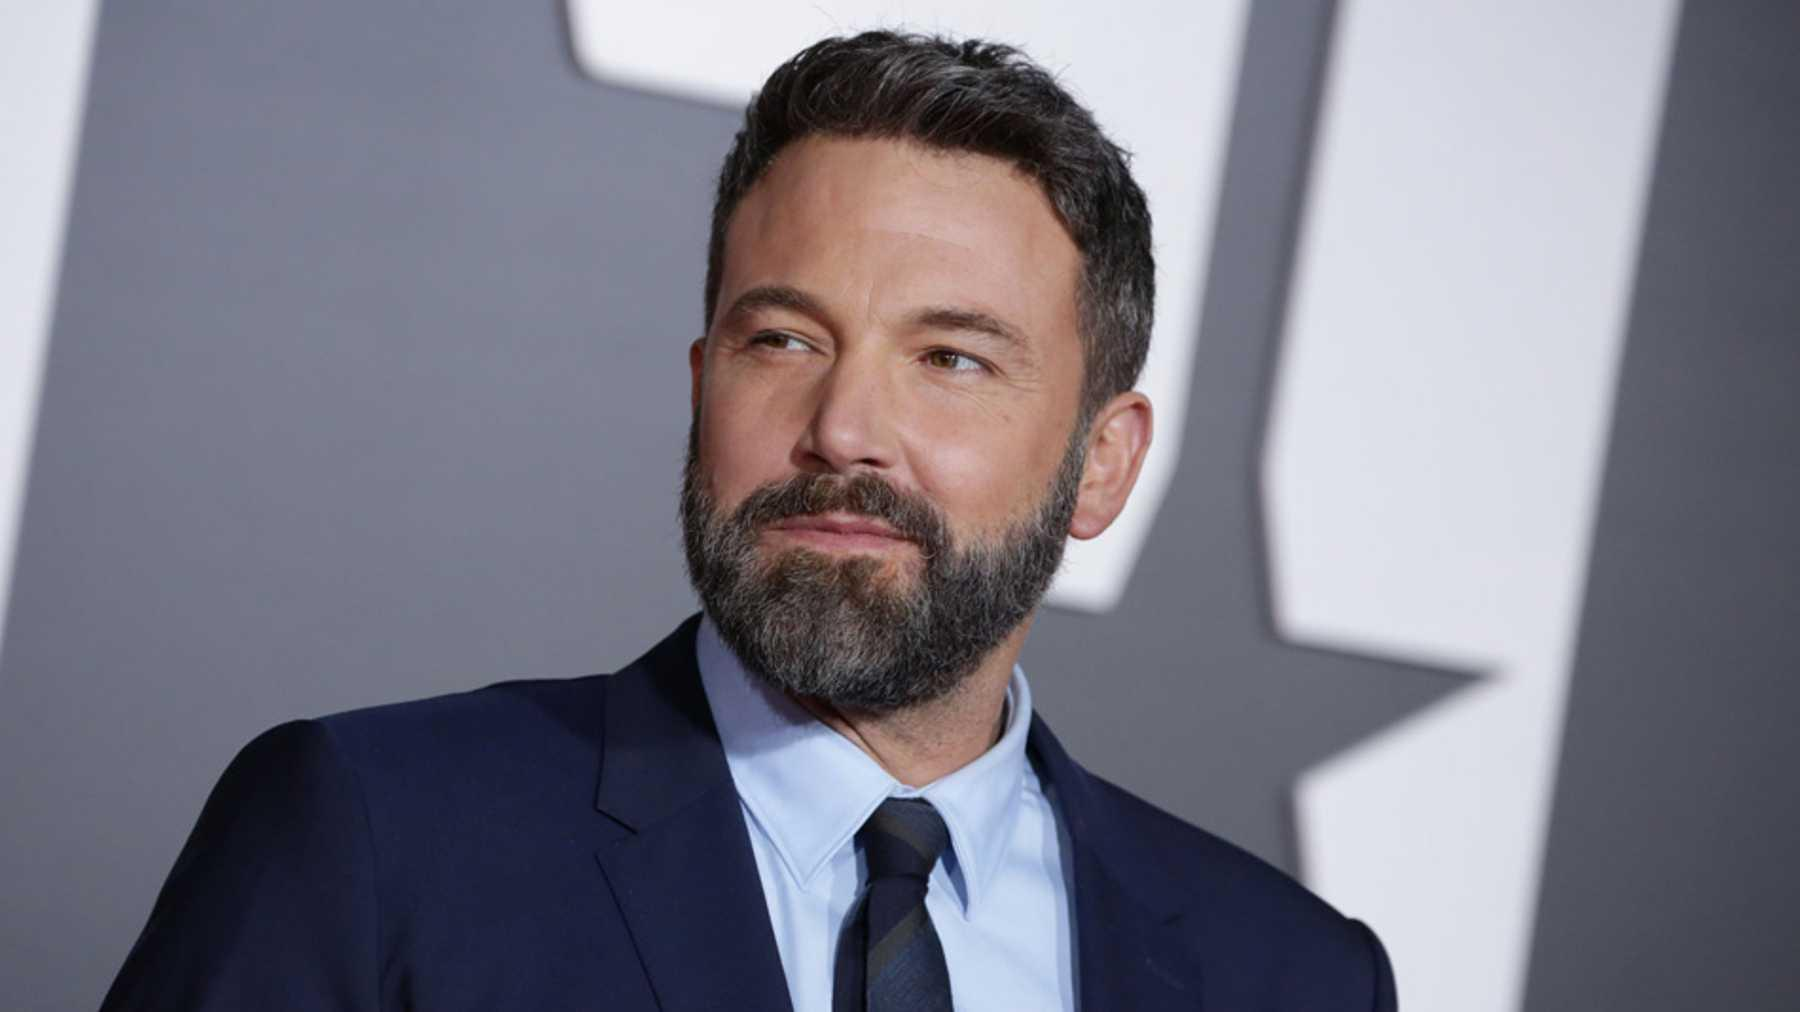 Ben Affleck Reportedly 'Taking His Sobriety Very Seriously' Despite Relapsing On Halloween